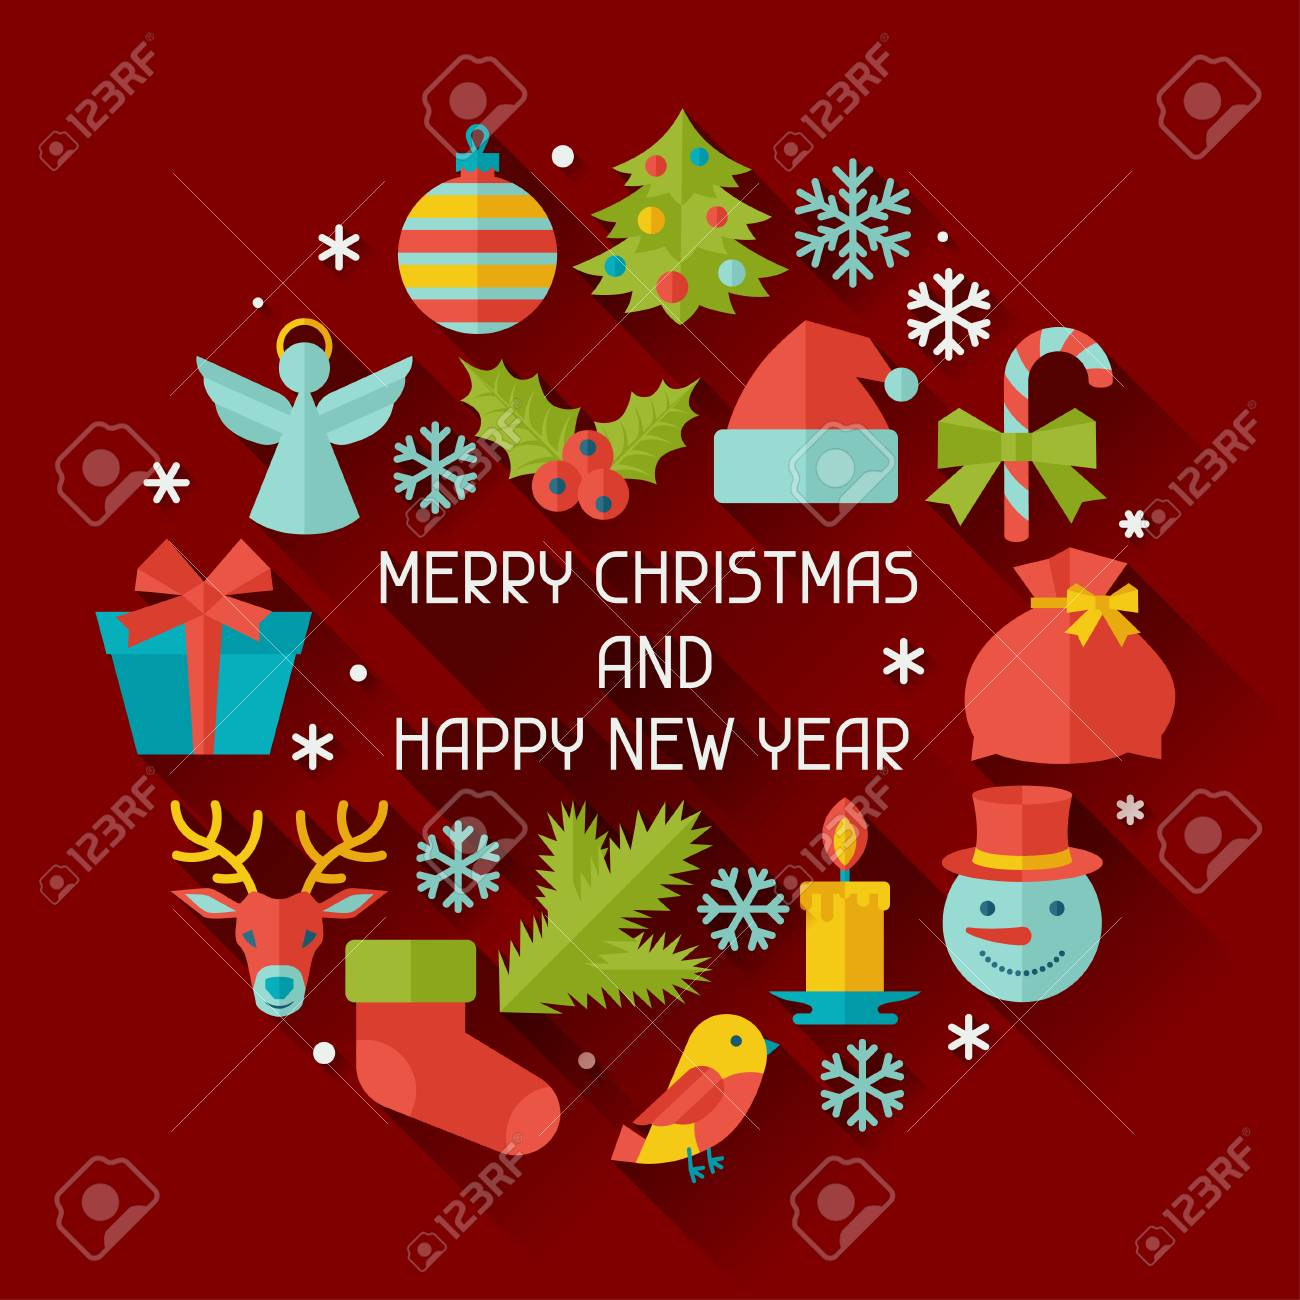 merry christmas and happy new year invitation card stock vector 33679640